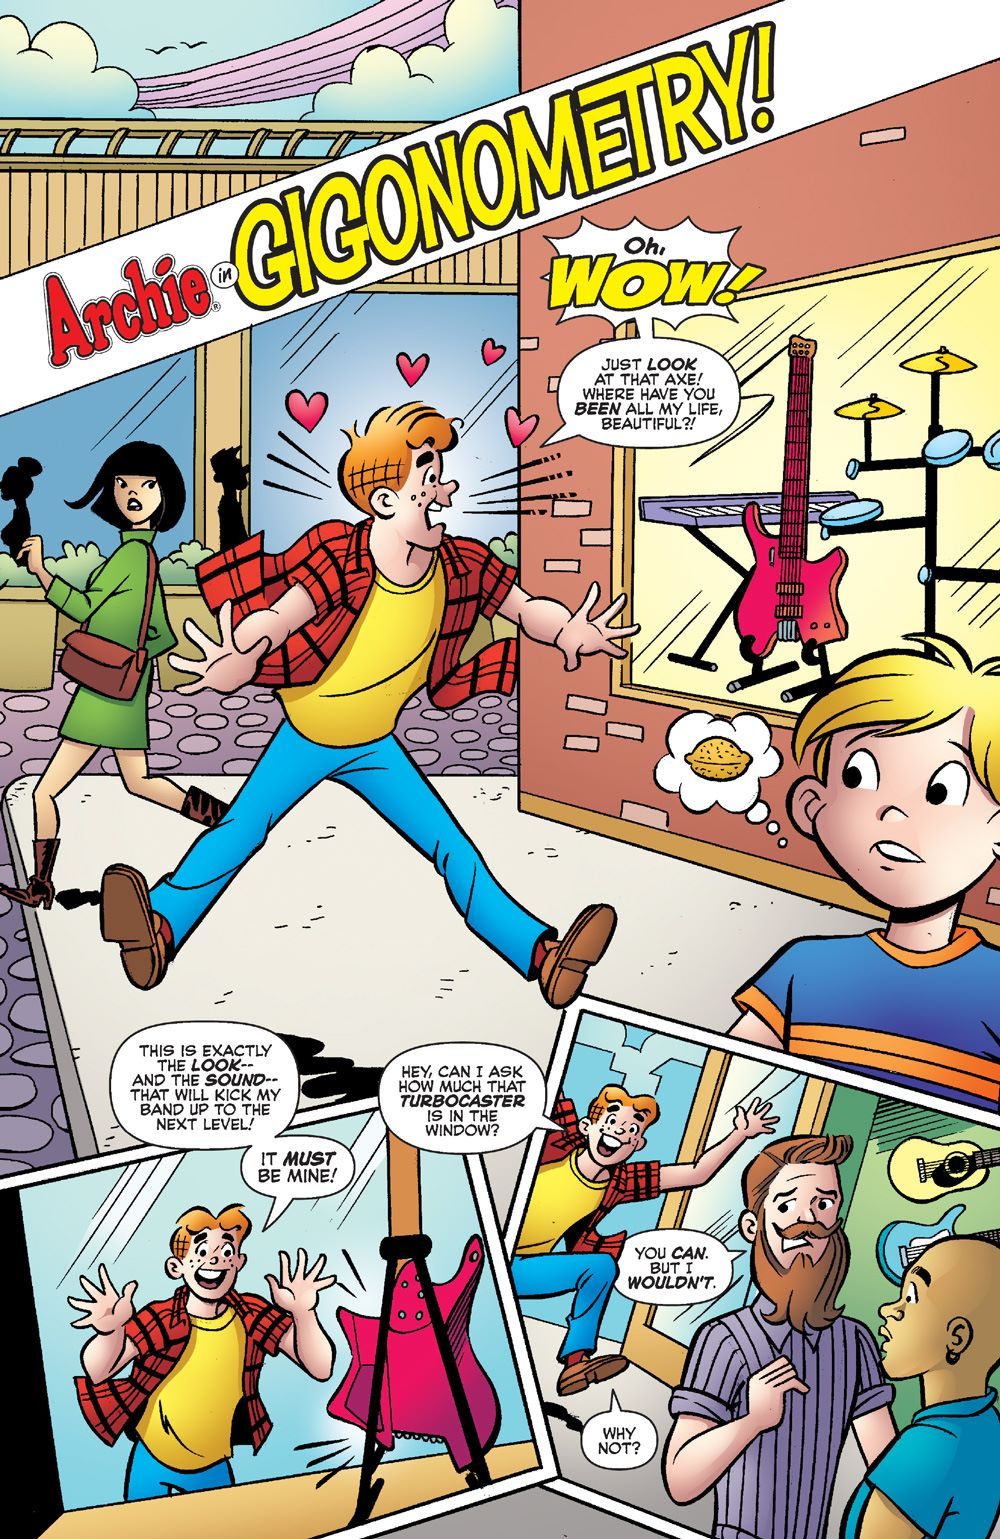 EverythingsArchie_01-3 ComicList Previews: ARCHIE 80TH ANNIVERSARY EVERYTHING'S ARCHIE #1